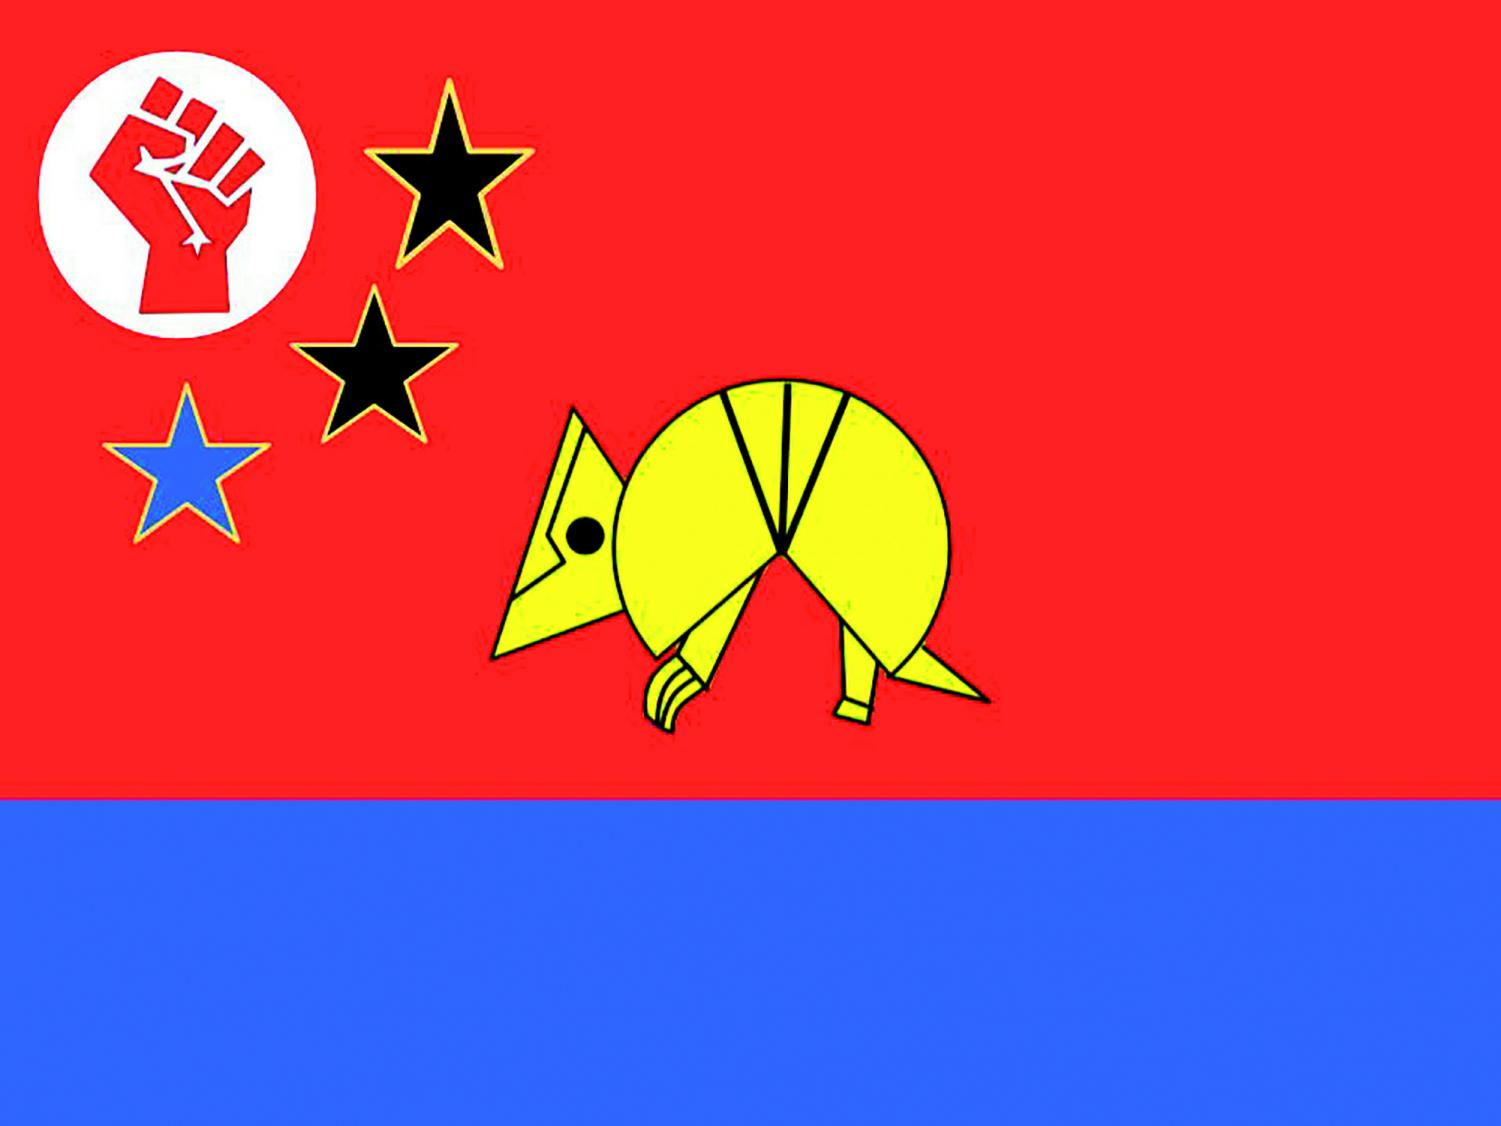 The Wydown Socialist Union's flag